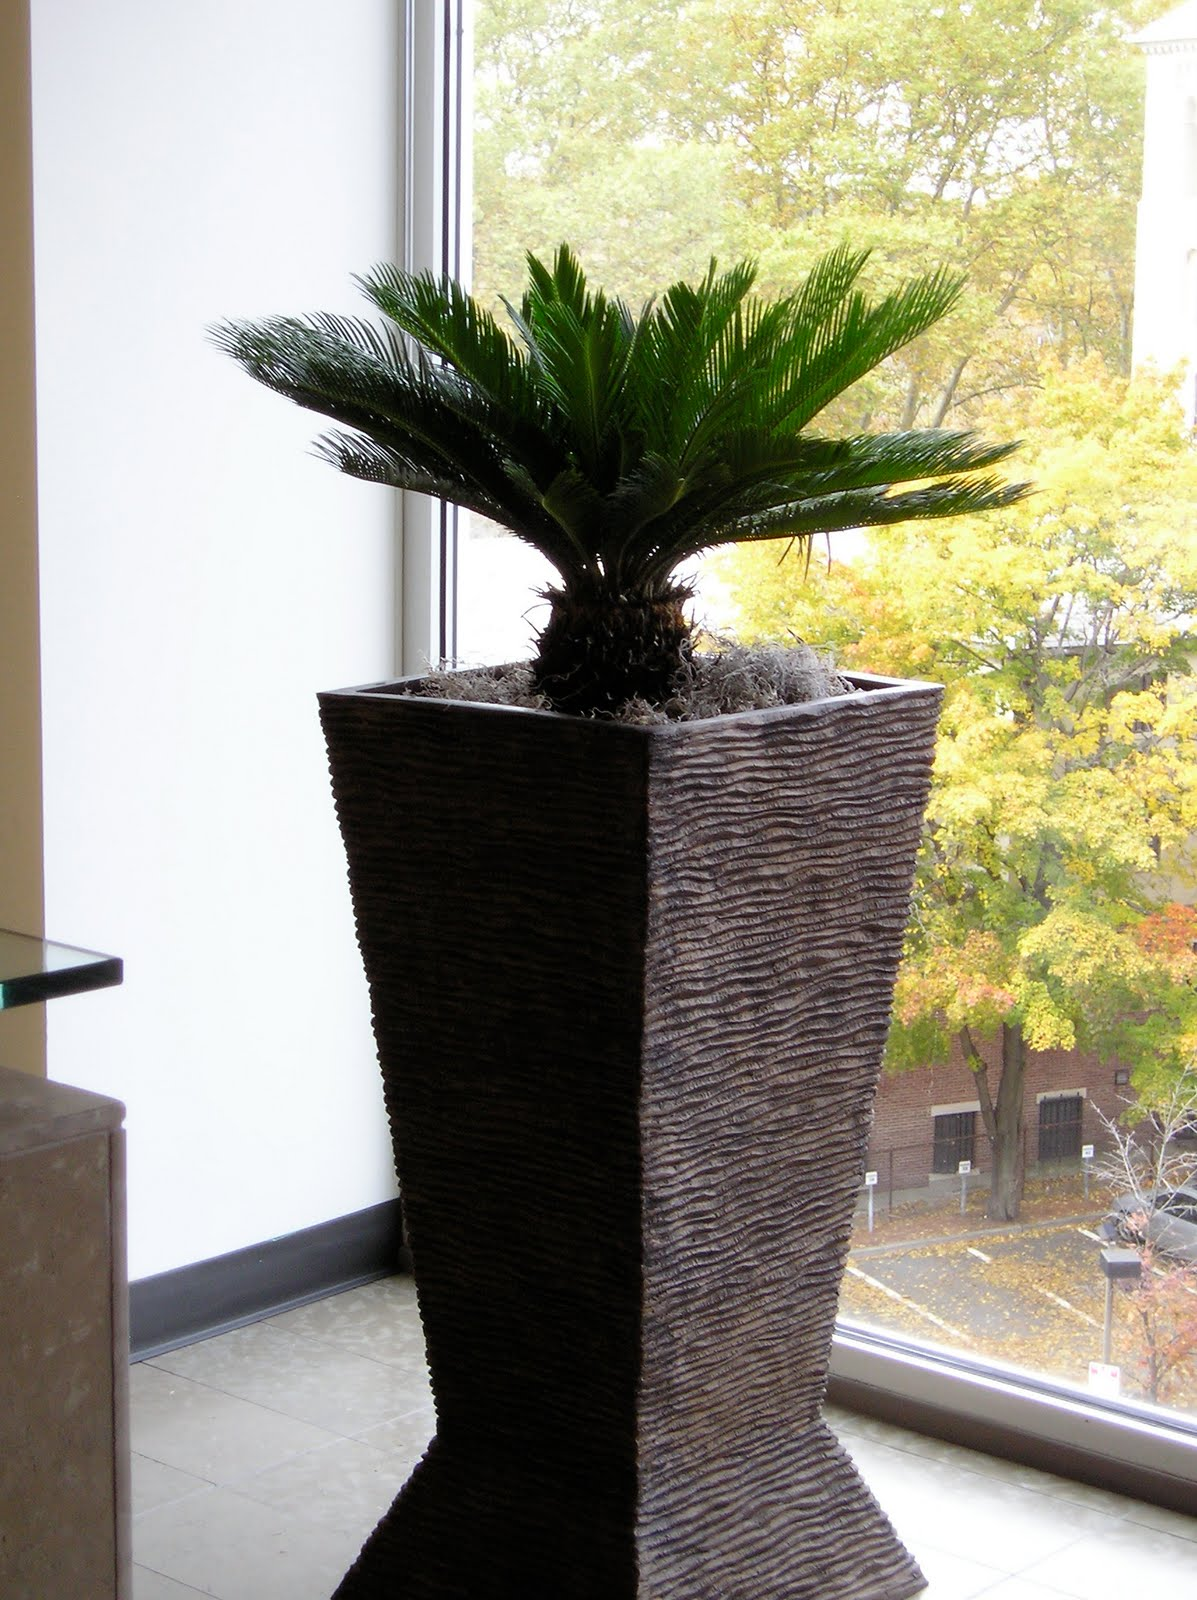 Pdi plants blog why use starbucks coffee grounds in your indoor office plants soil - Indoor desk plants ...